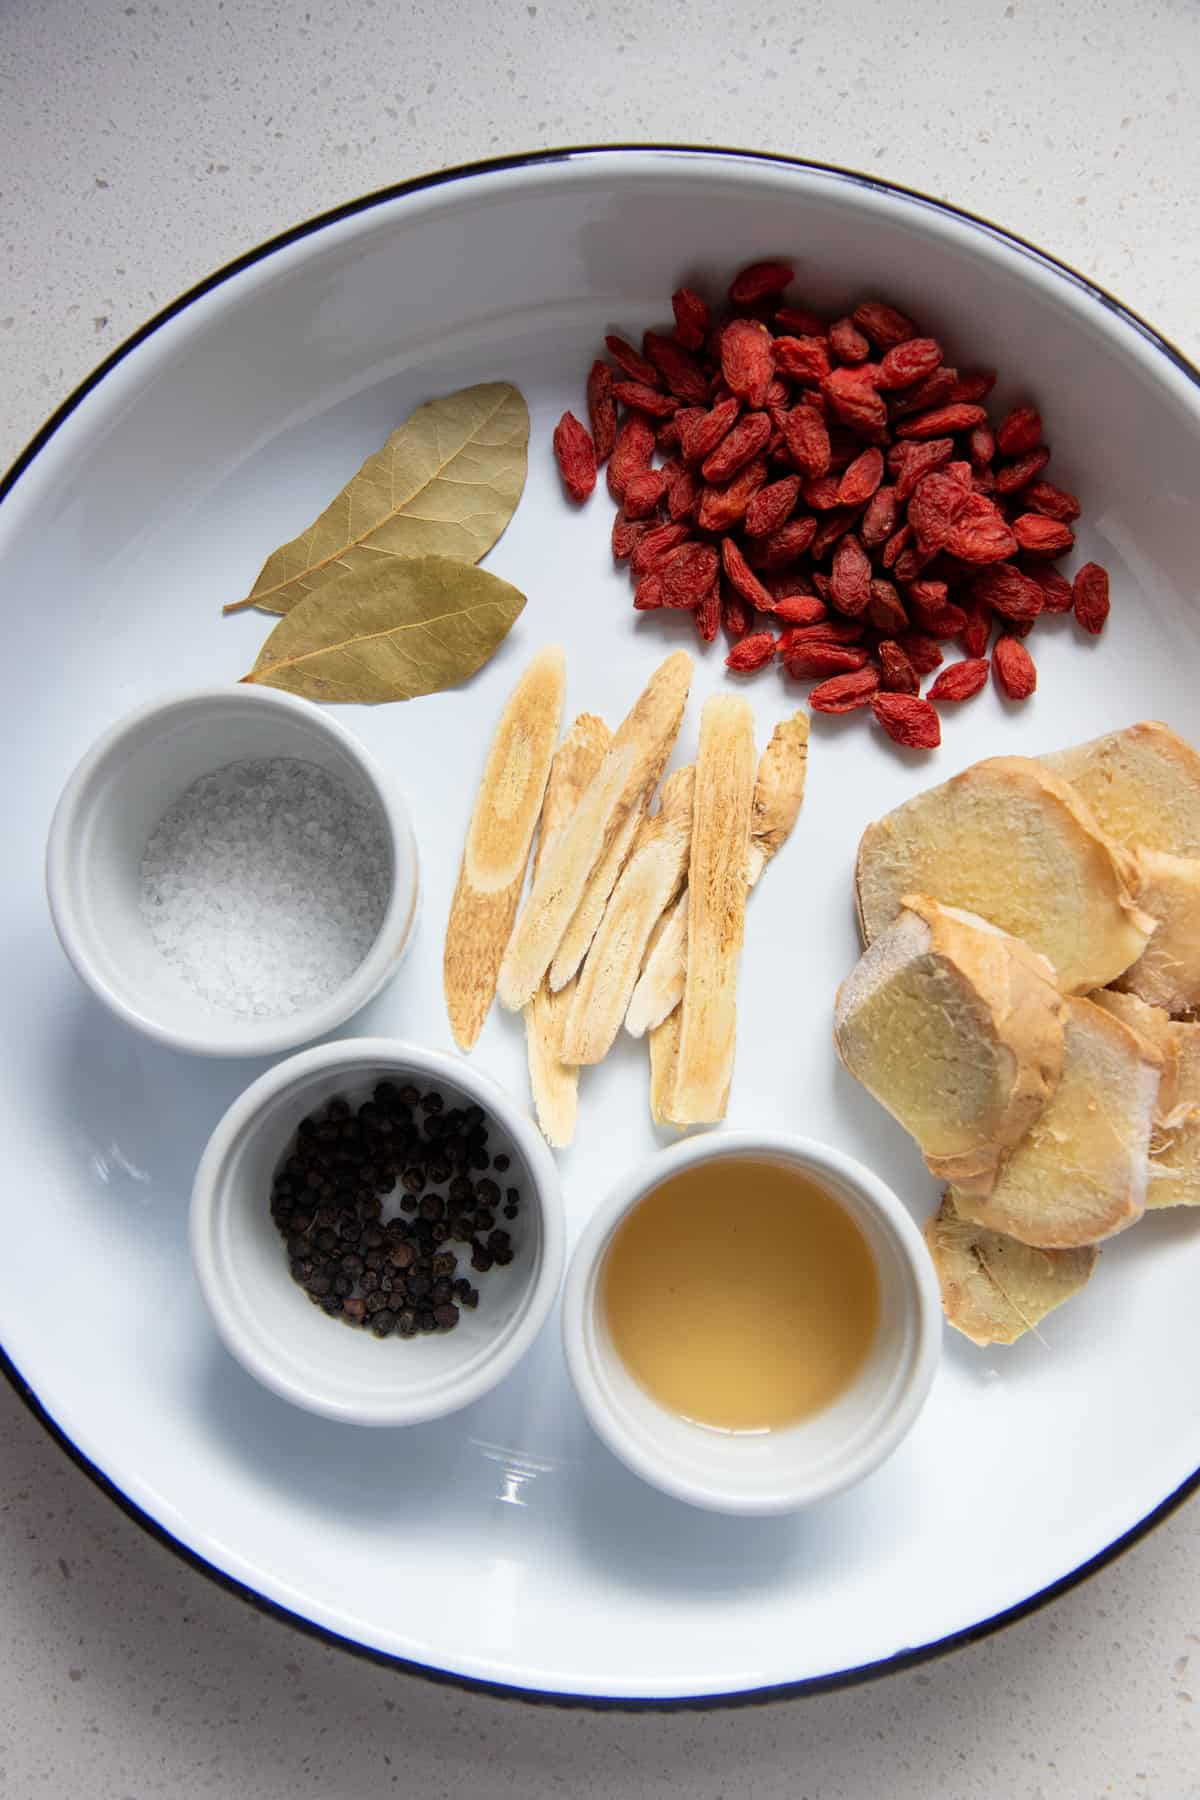 Ingredients are laid out on a white plate, including Chinese herbs and bay leaves.